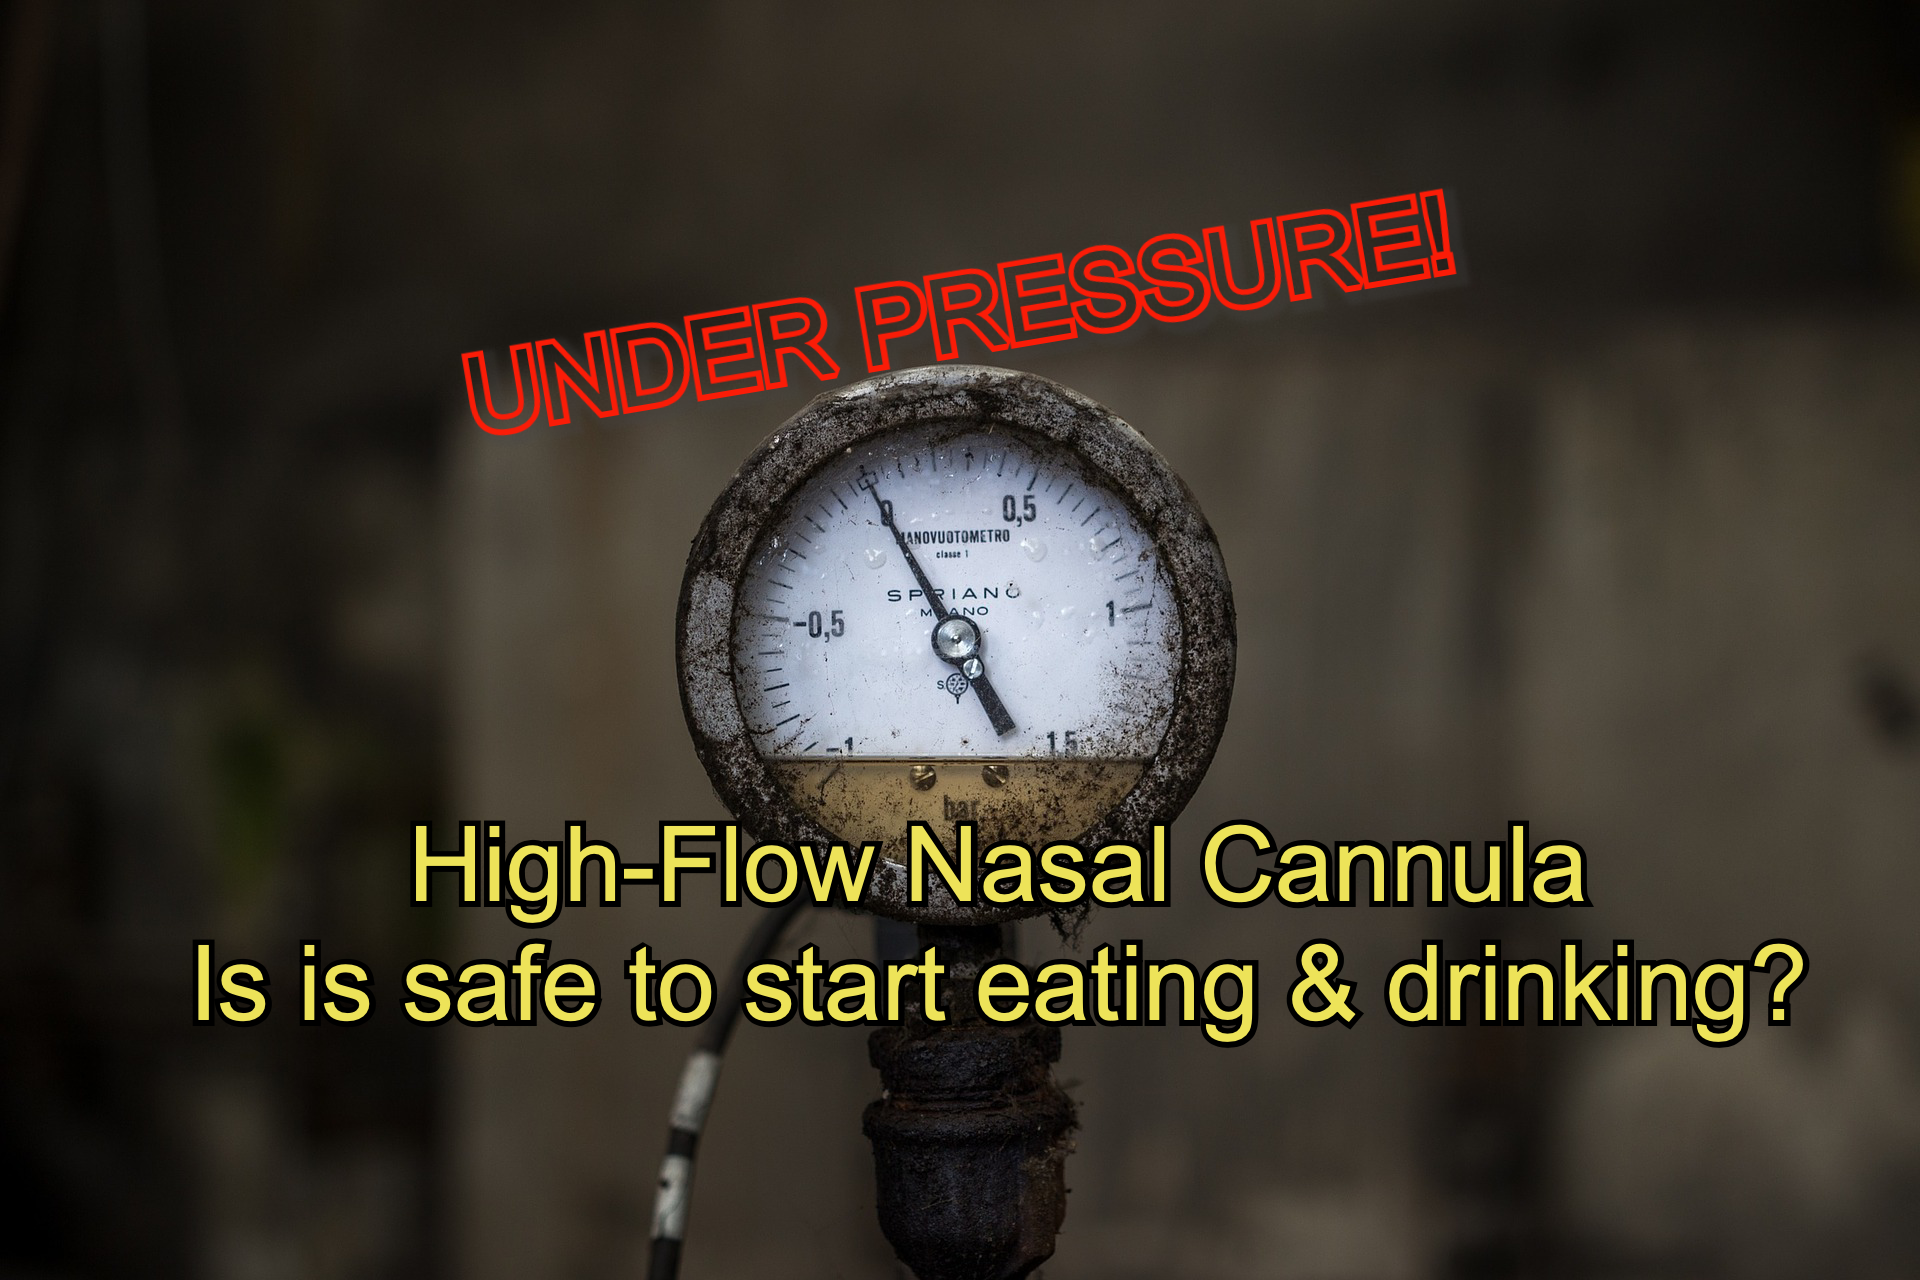 With HFNC: as the airflow increases, so does the pressure in the nasopharynx